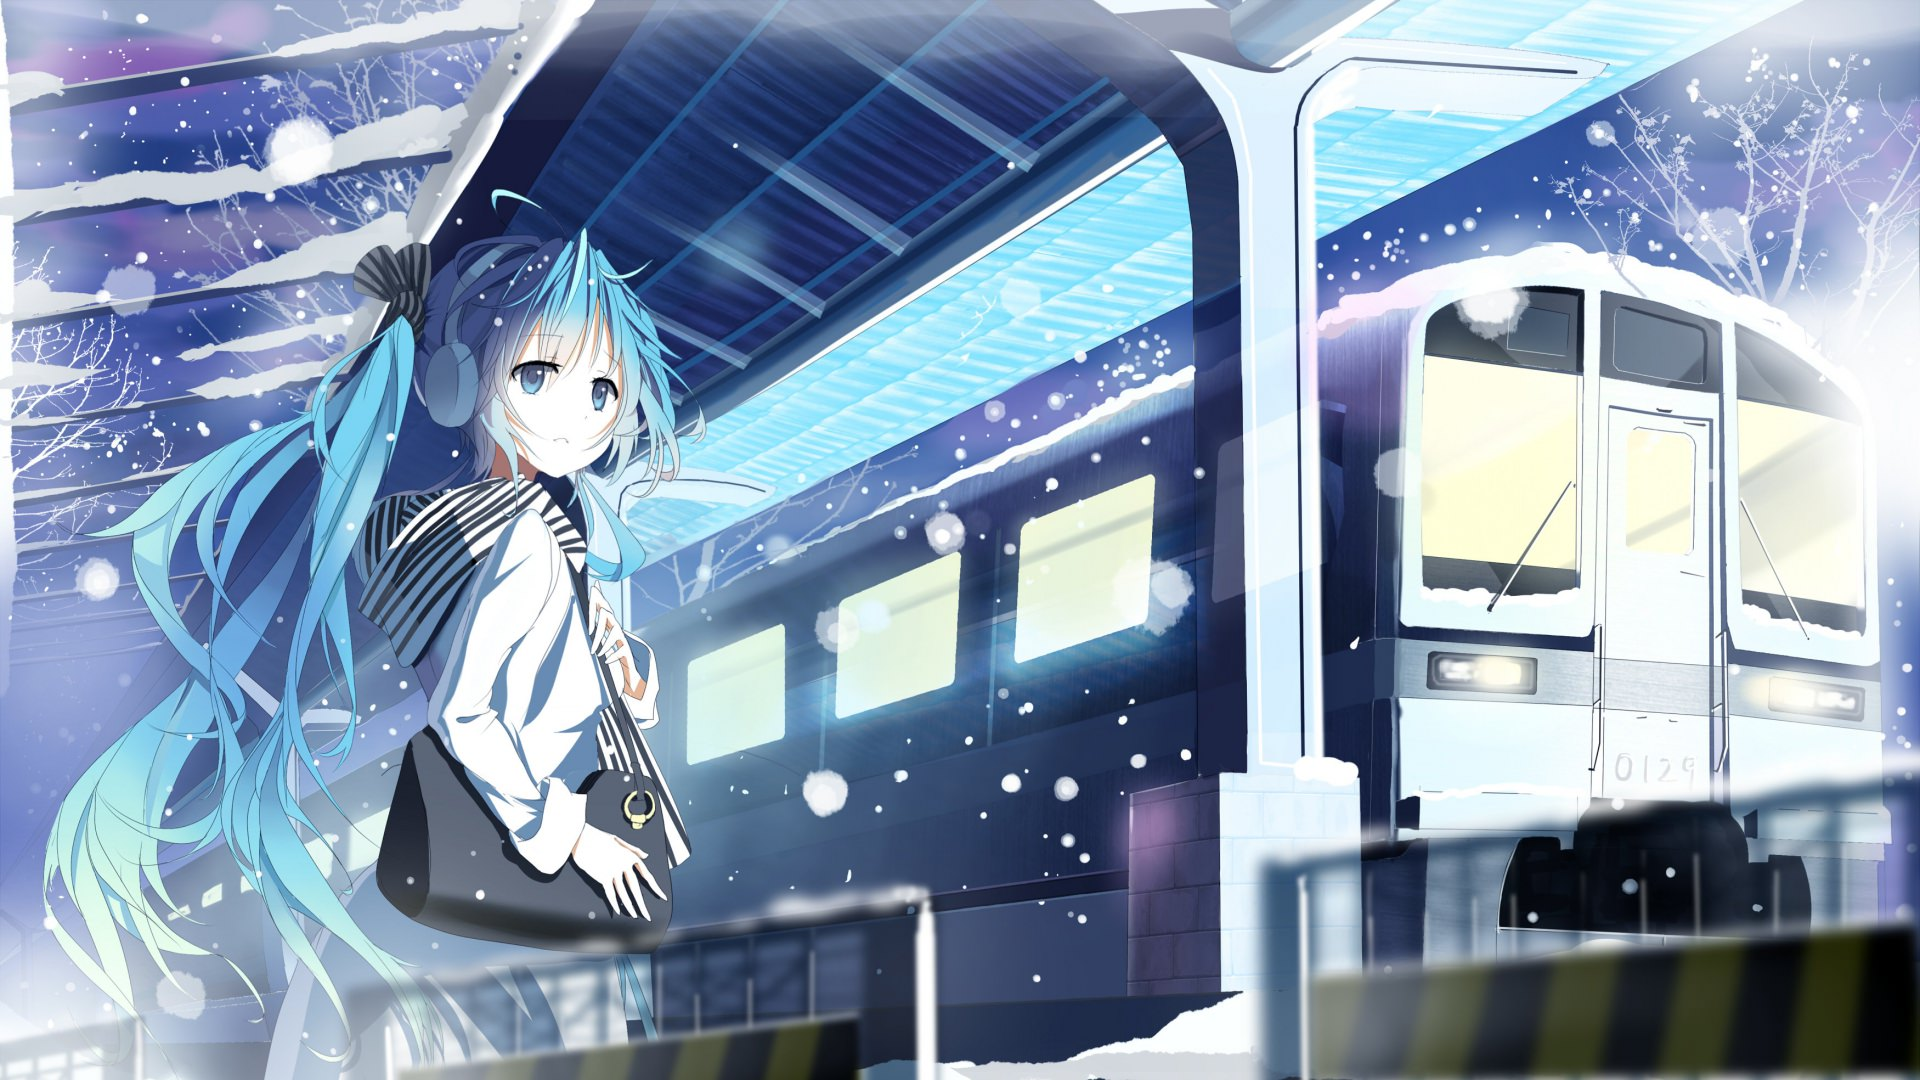 Alone Boy And Girl Wallpaper 24 Anime Backgrounds Wallpapers Images Pictures